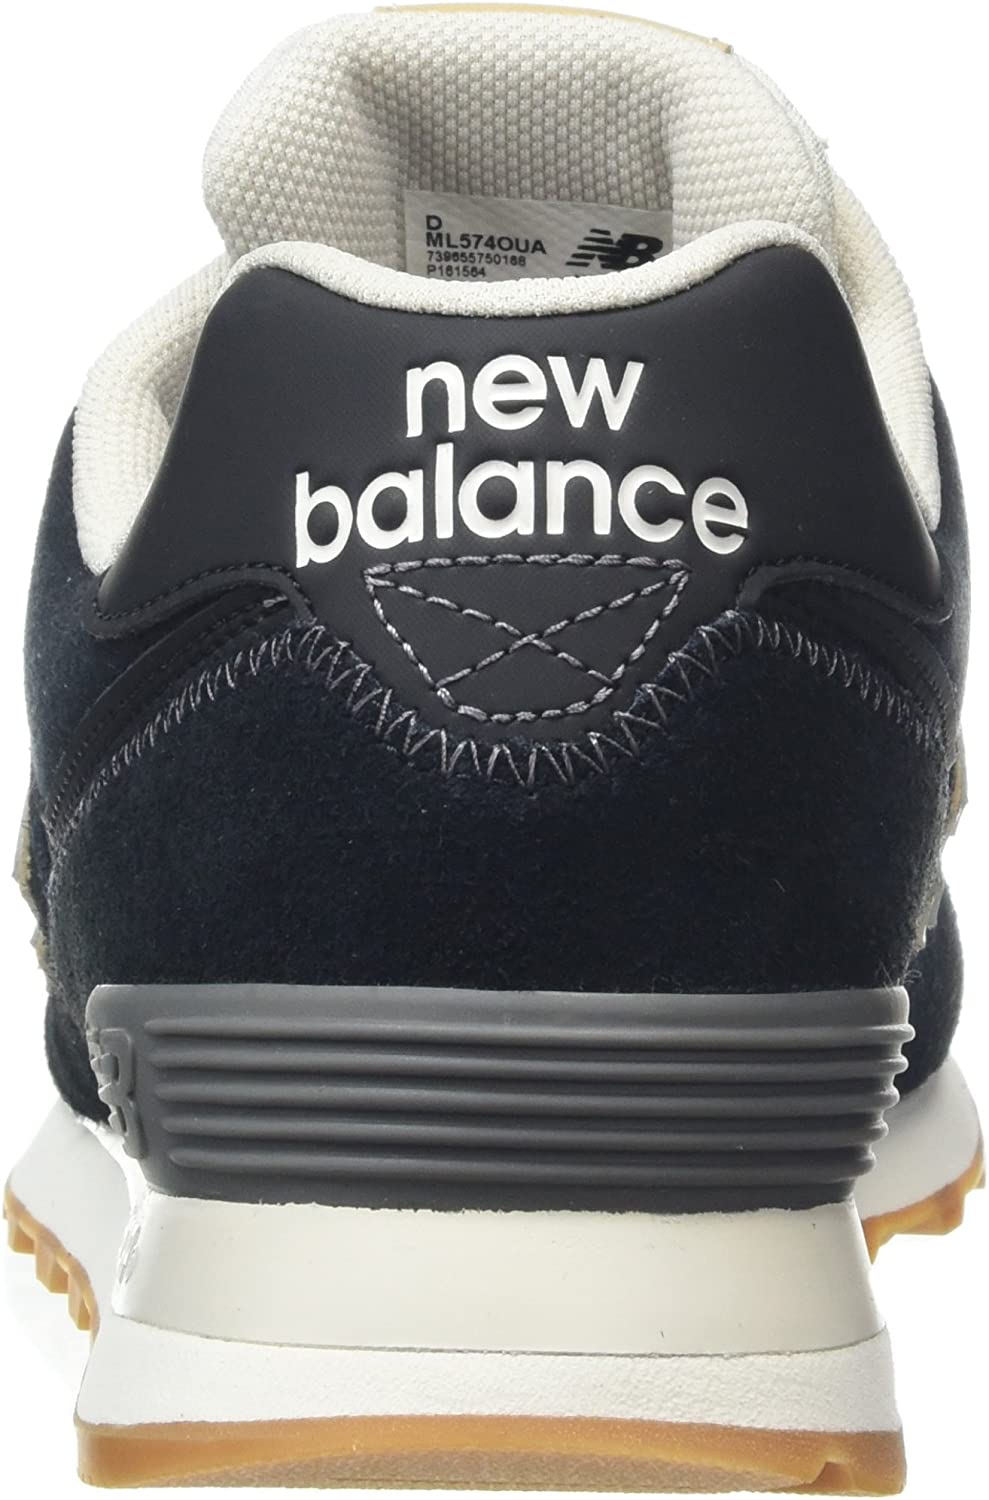 New Balance Herren ML574O, Sneaker, Schwarz (Black/Ml574oua)